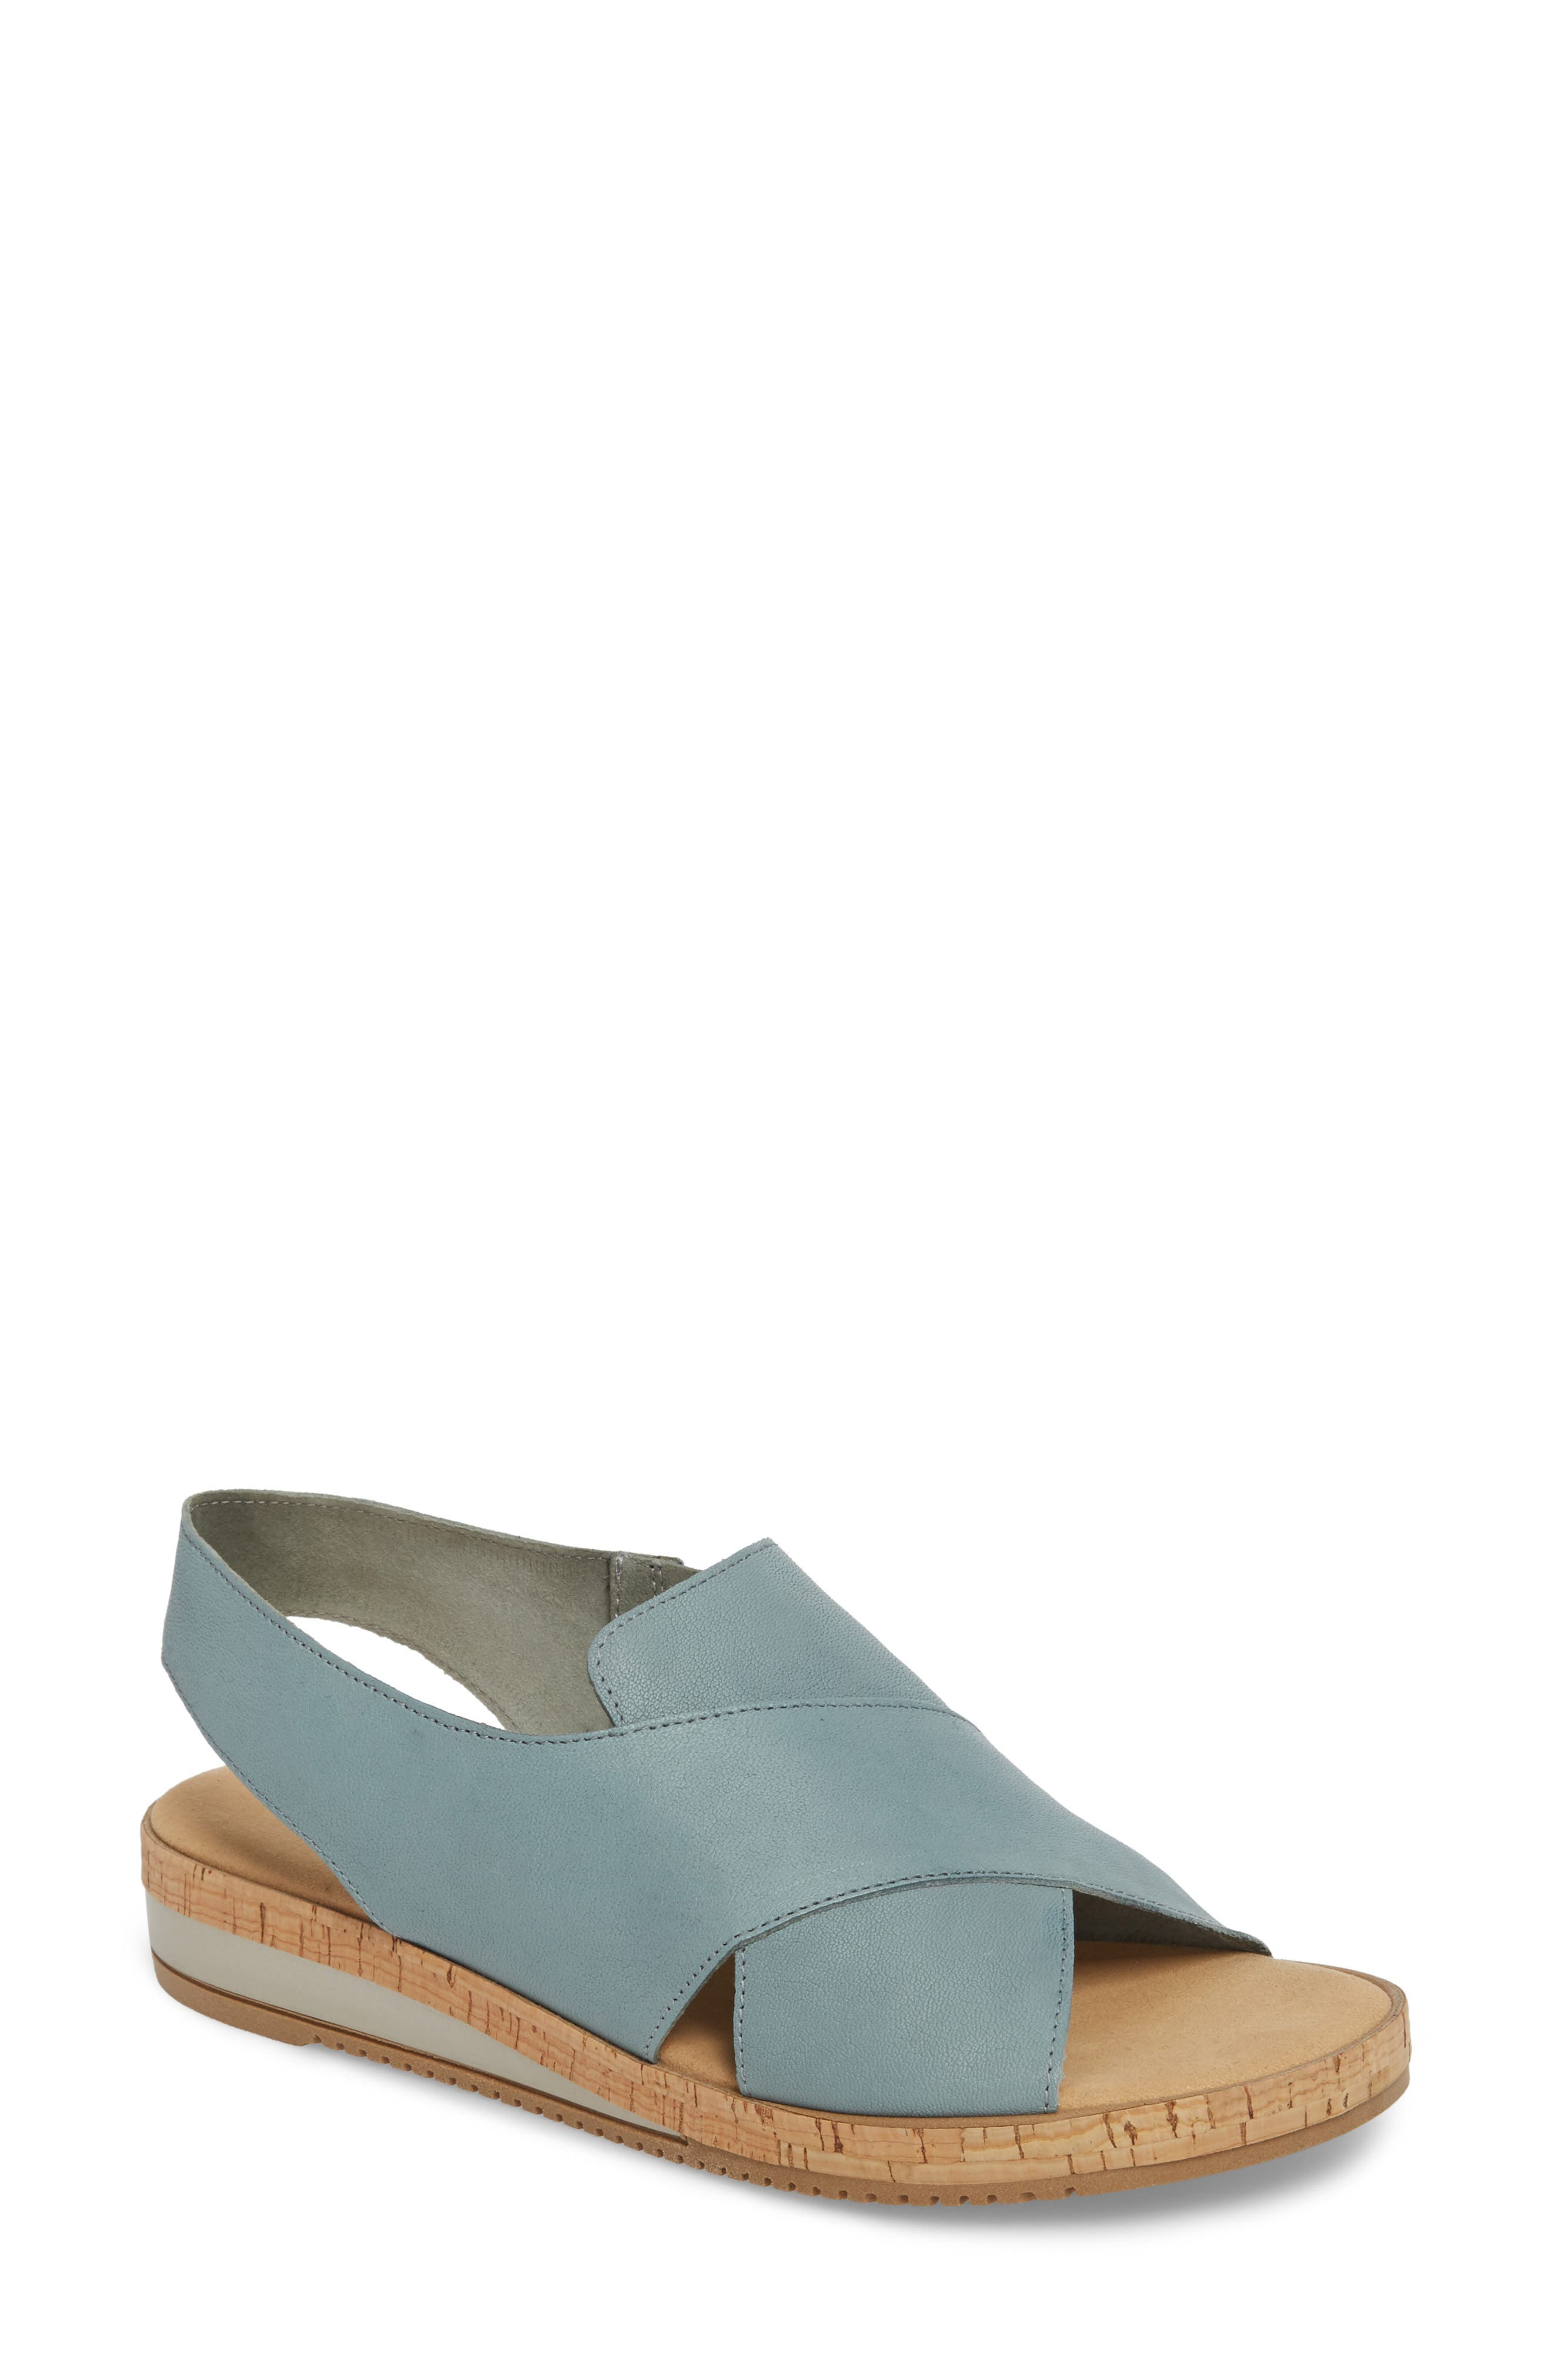 Alternate Image 1 Selected - Sesto Meucci Sylke Sandal (Women)